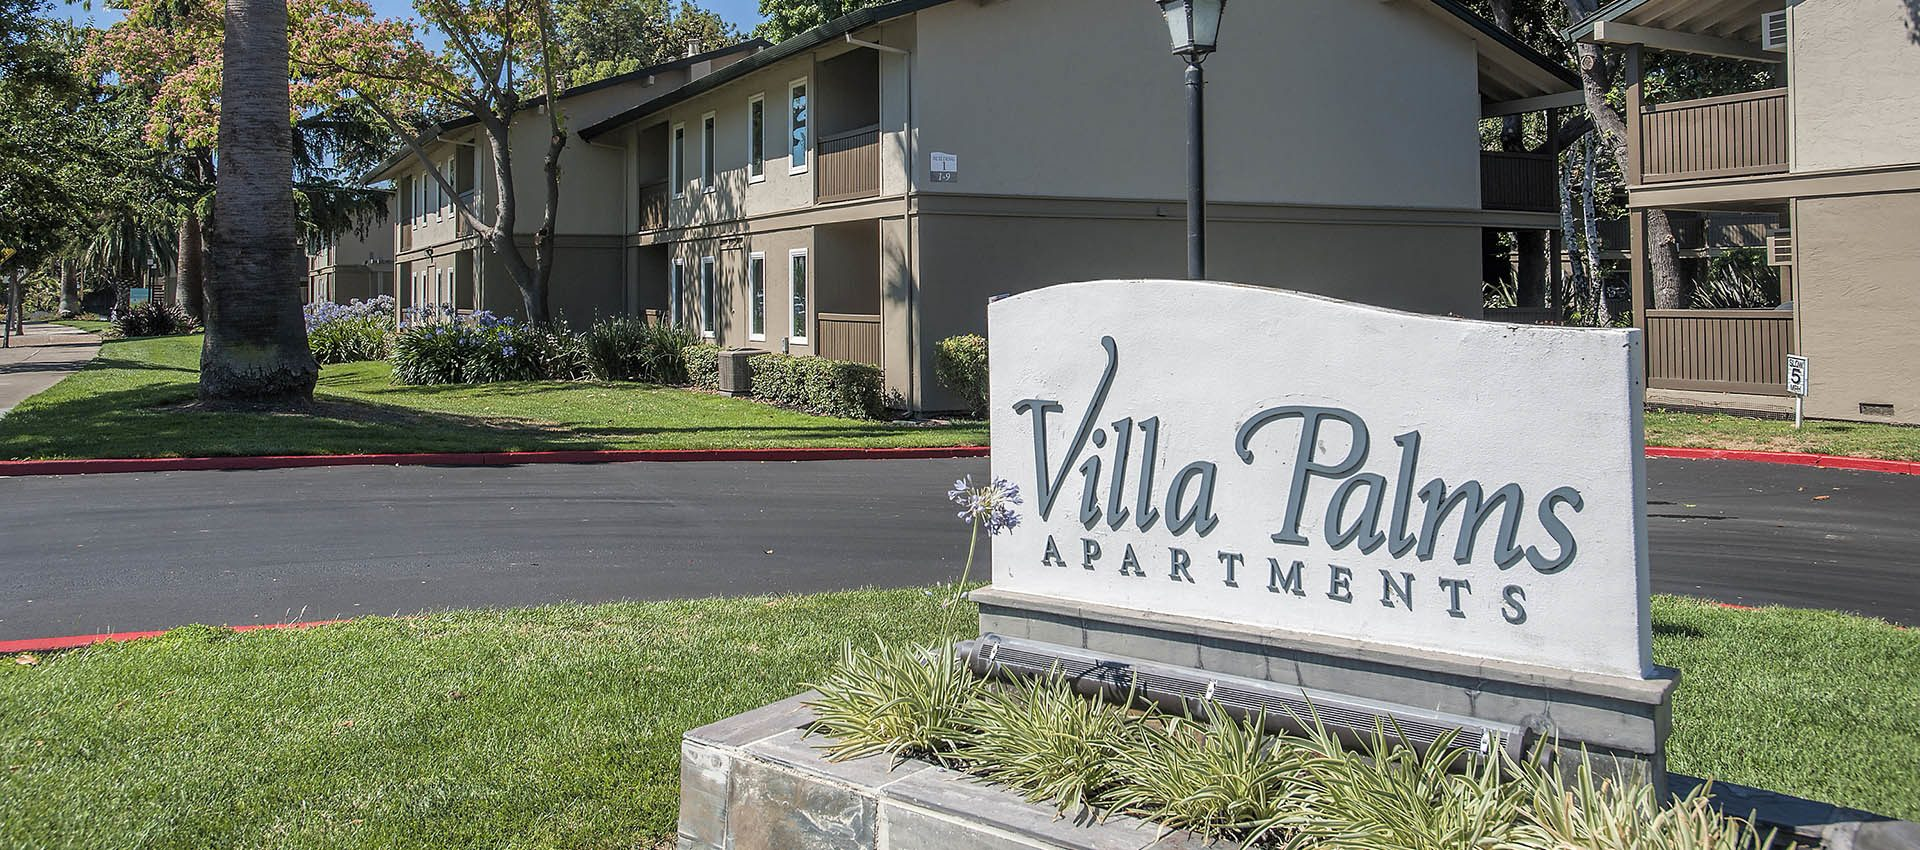 Signage at Villa Palms Apartment Homes in Livermore, CA